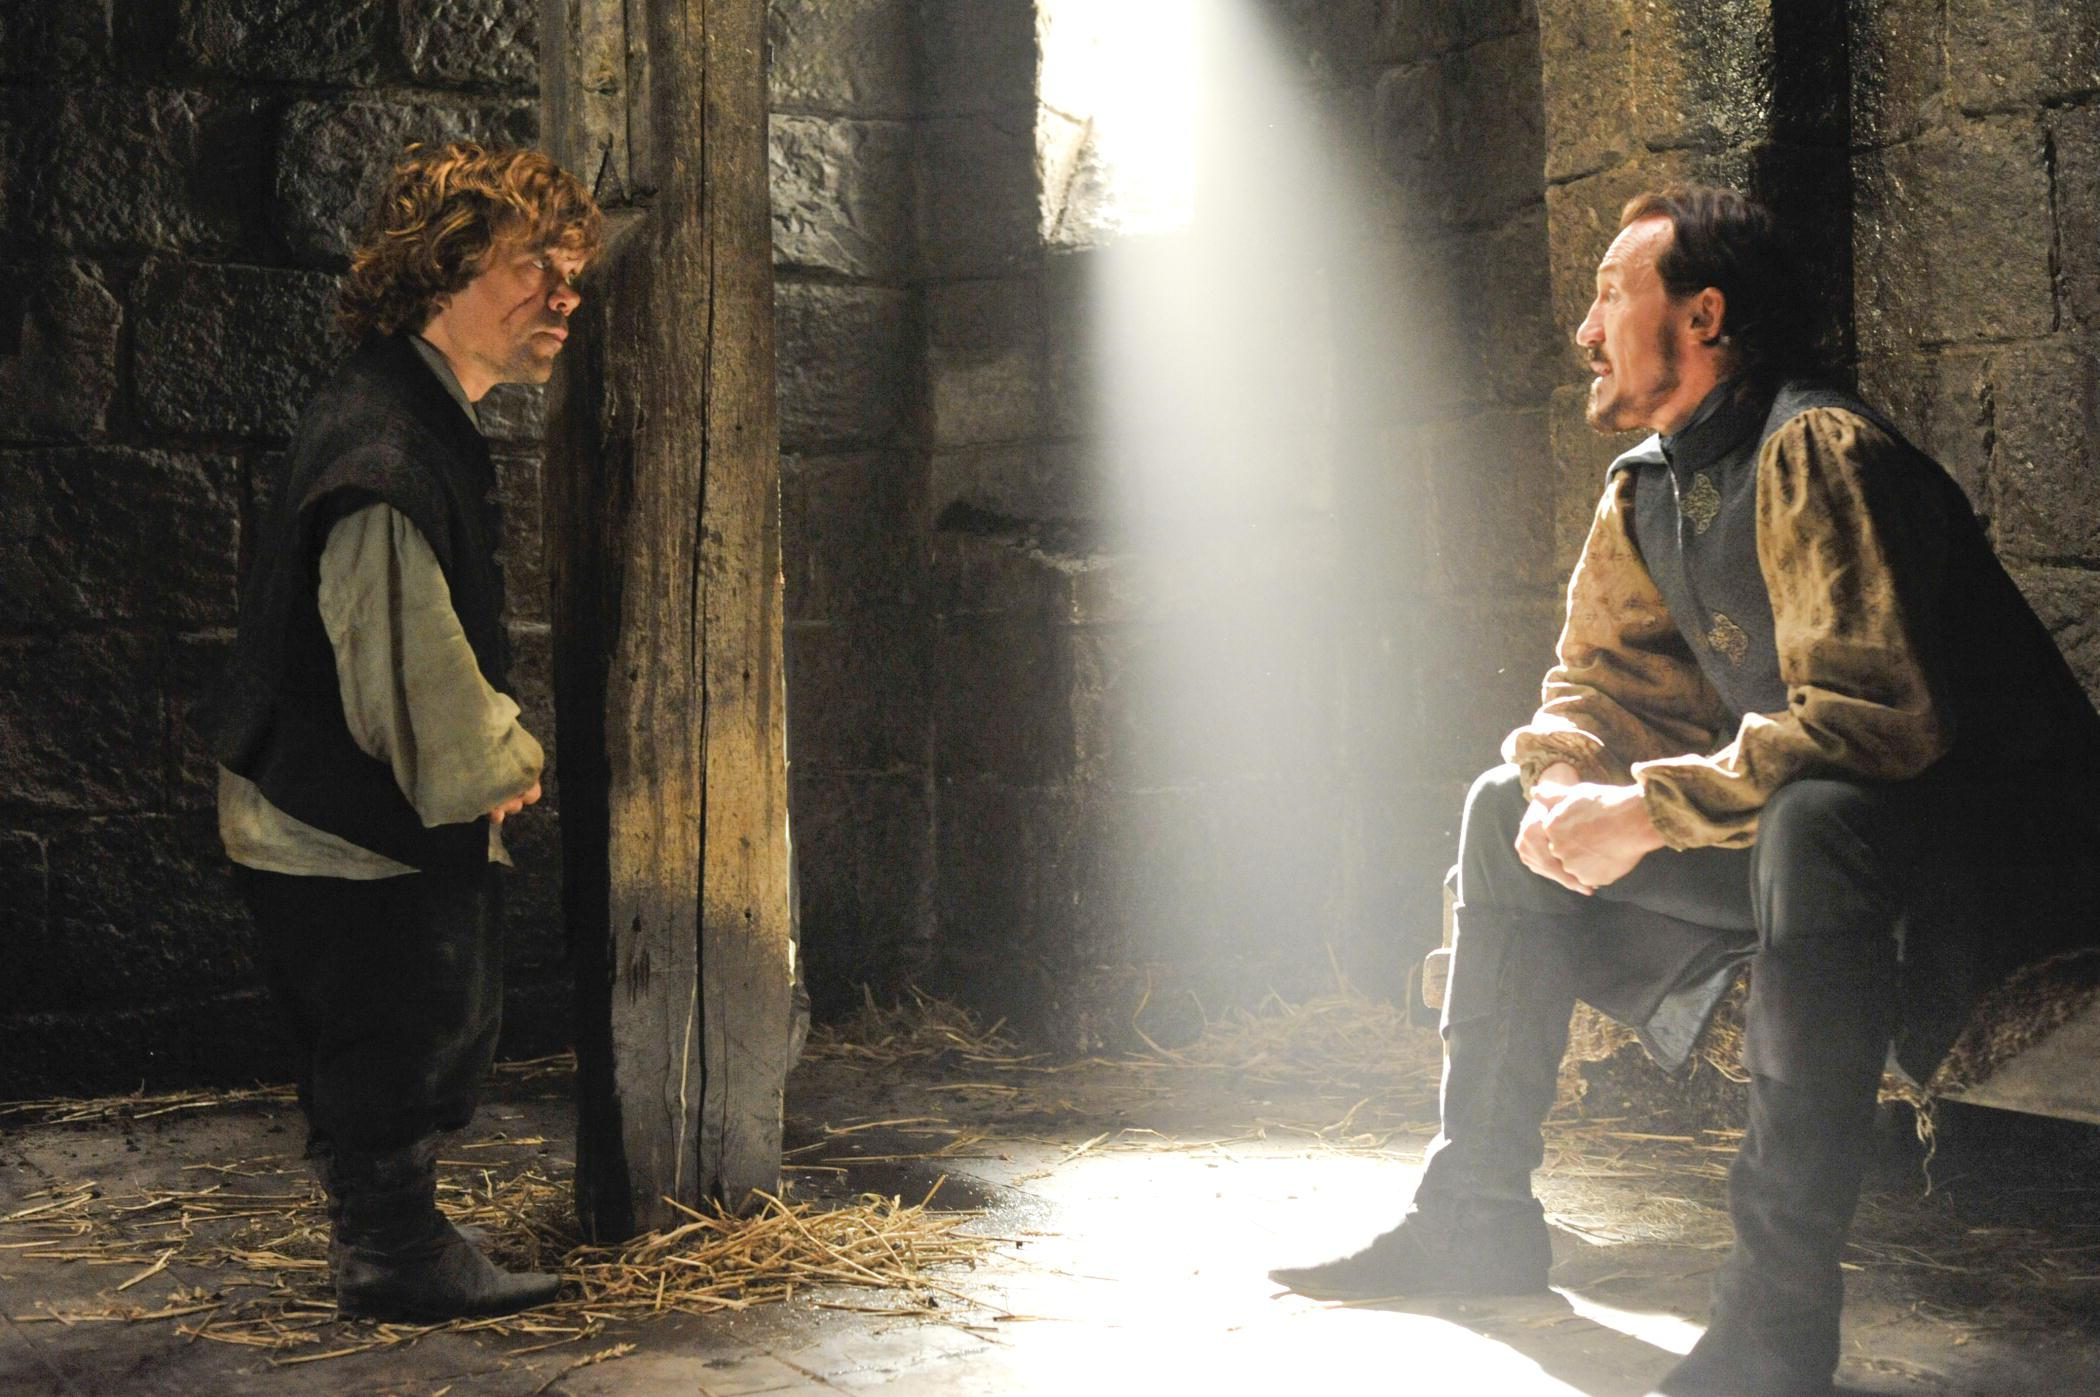 Tyrion Lannister (Peter Dinklage) and Bronn (Jerome Flynn) in Game of Thrones.